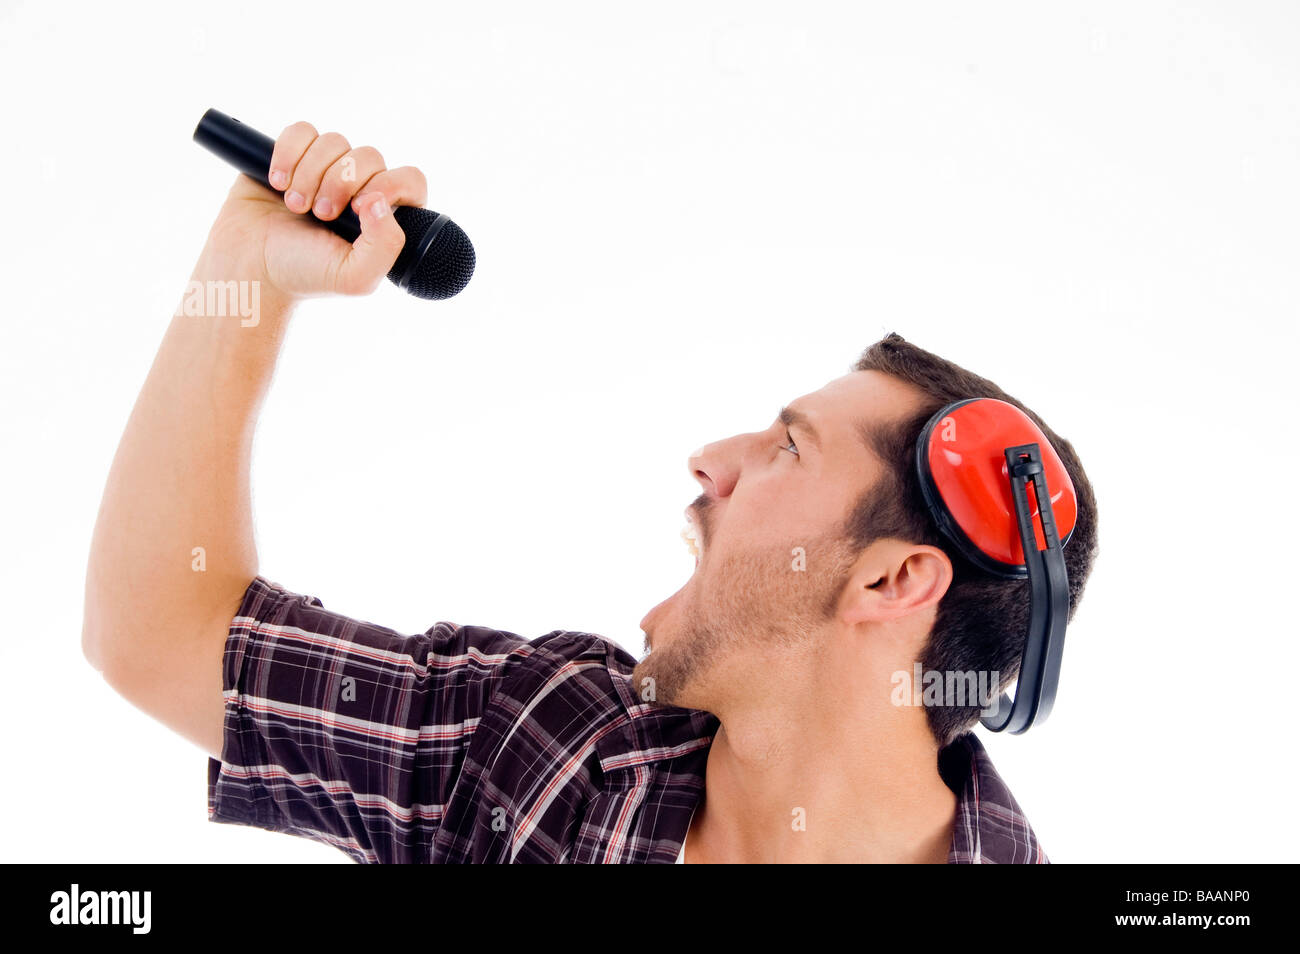 male singing loudly on microphone - Stock Image